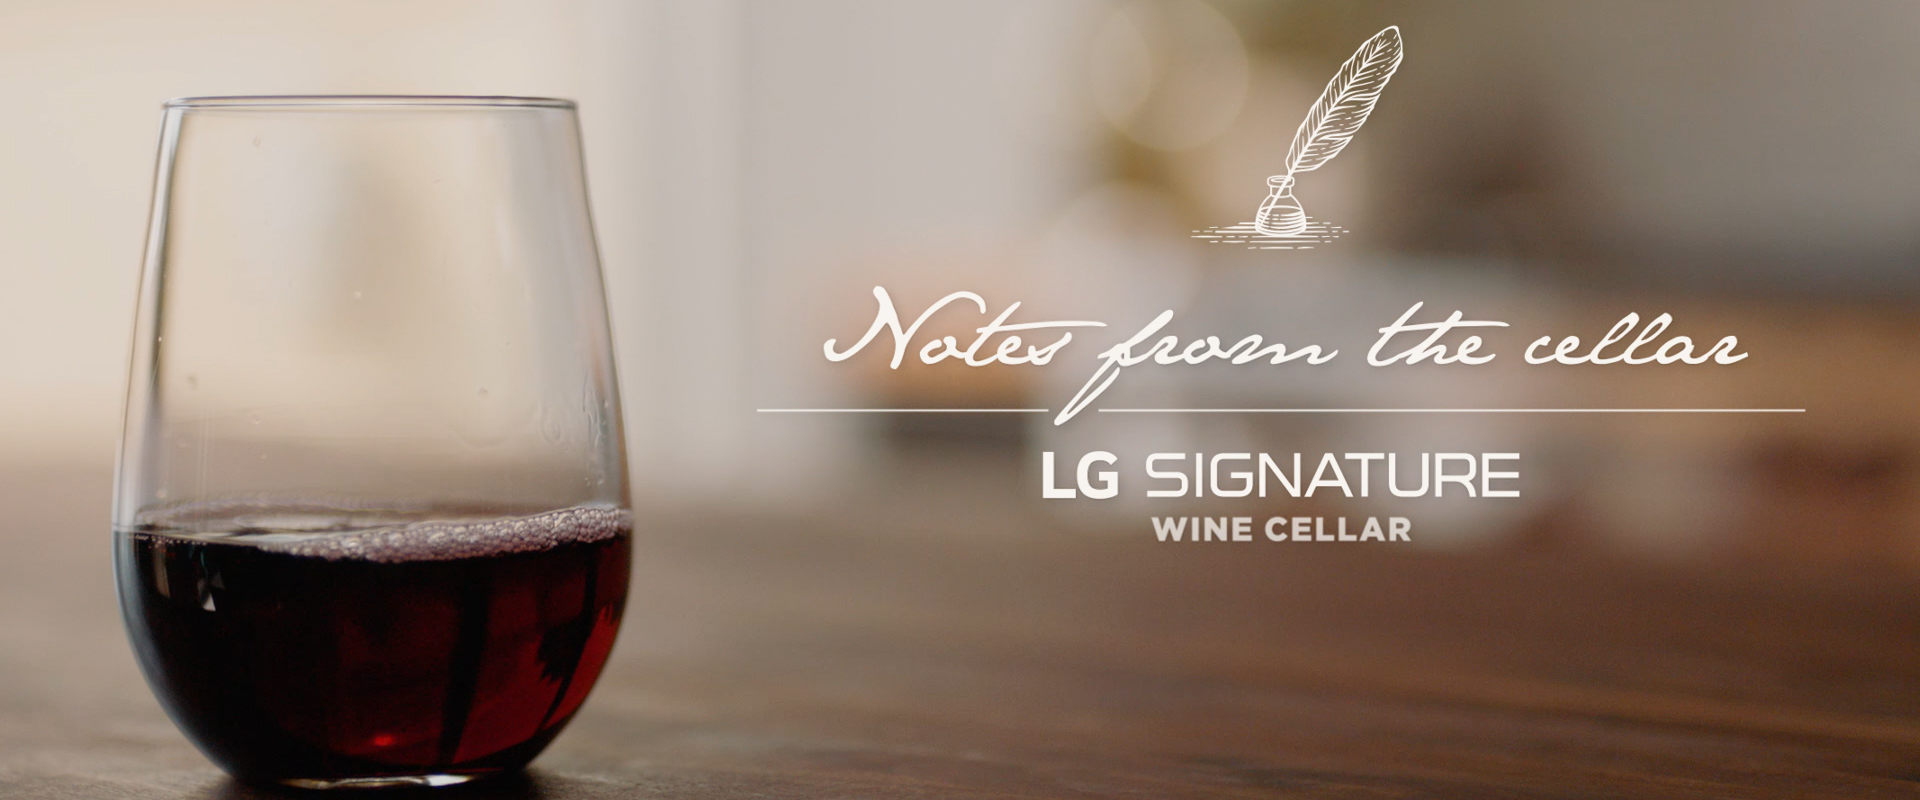 LG SIGNATURE Premieres 'Notes From The Cellar' Series With Brand Ambassadors And Acclaimed Chefs